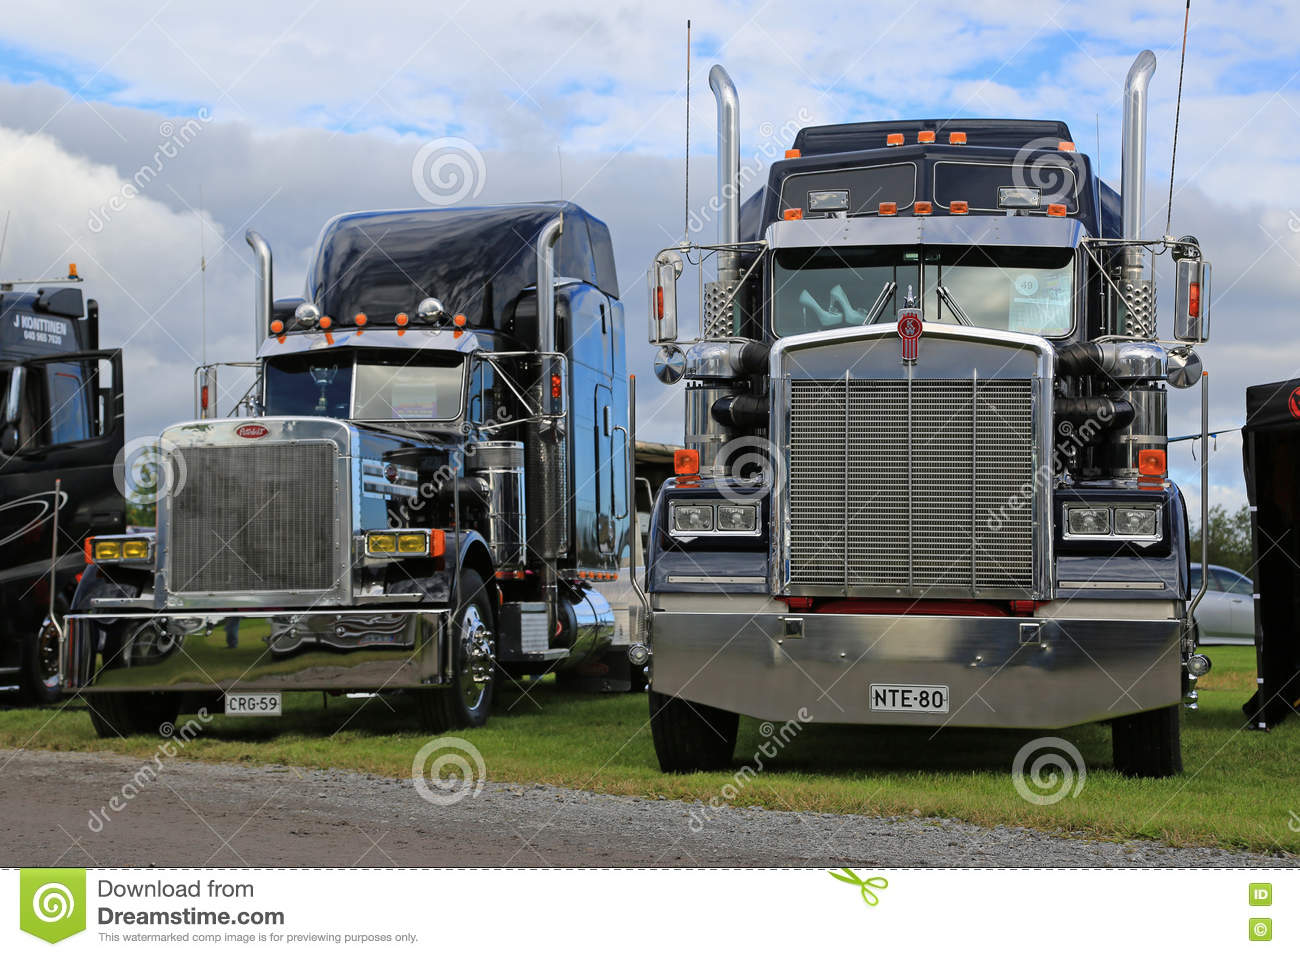 285 Peterbilt Photos Free Royalty Free Stock Photos From Dreamstime